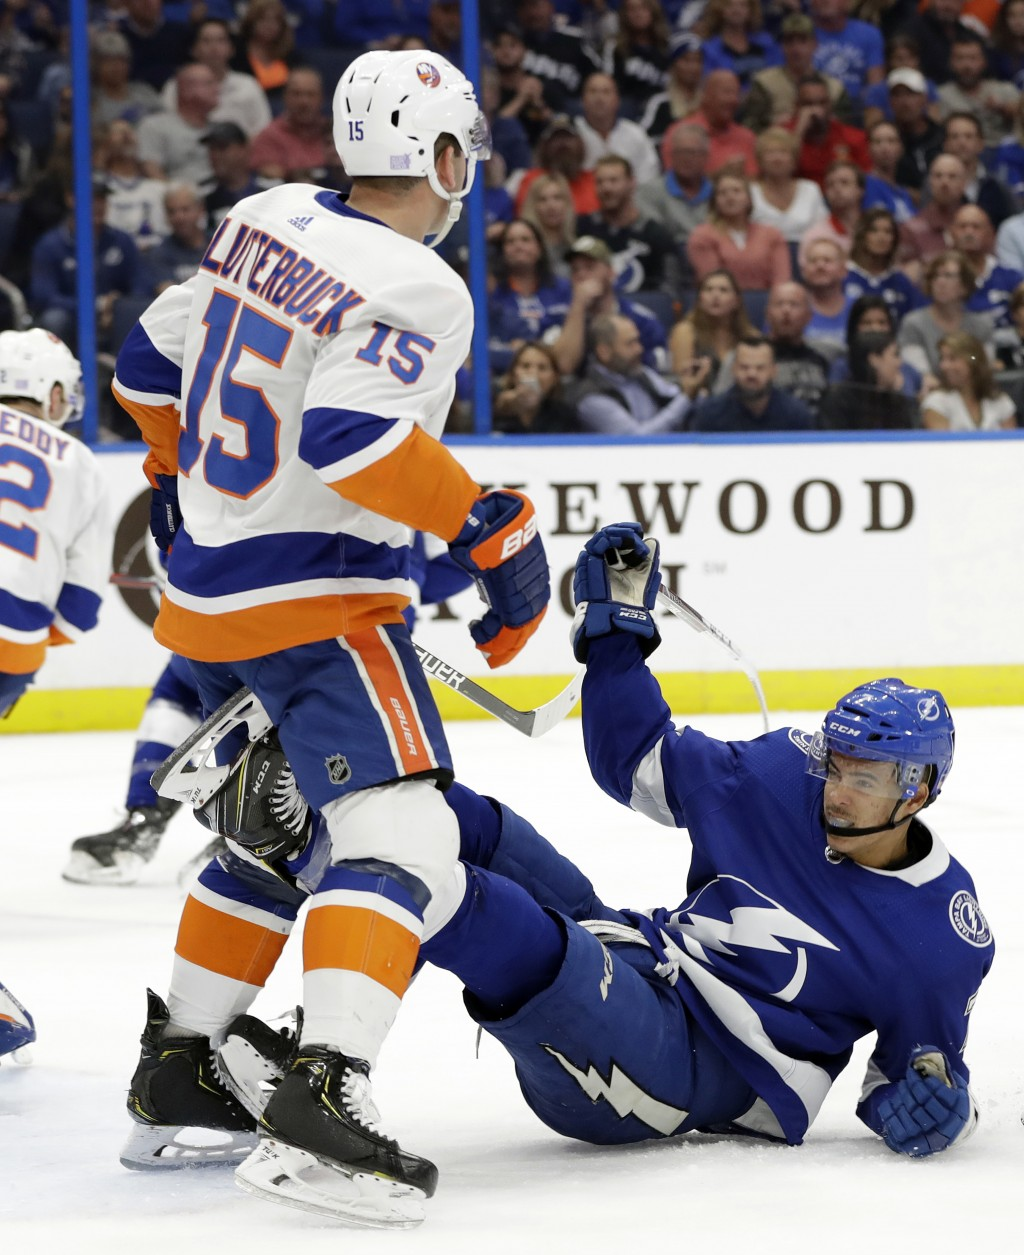 New York Islanders right wing Cal Clutterbuck (15) knocks down Tampa Bay Lightning right wing Mathieu Joseph during the second period of an NHL hockey